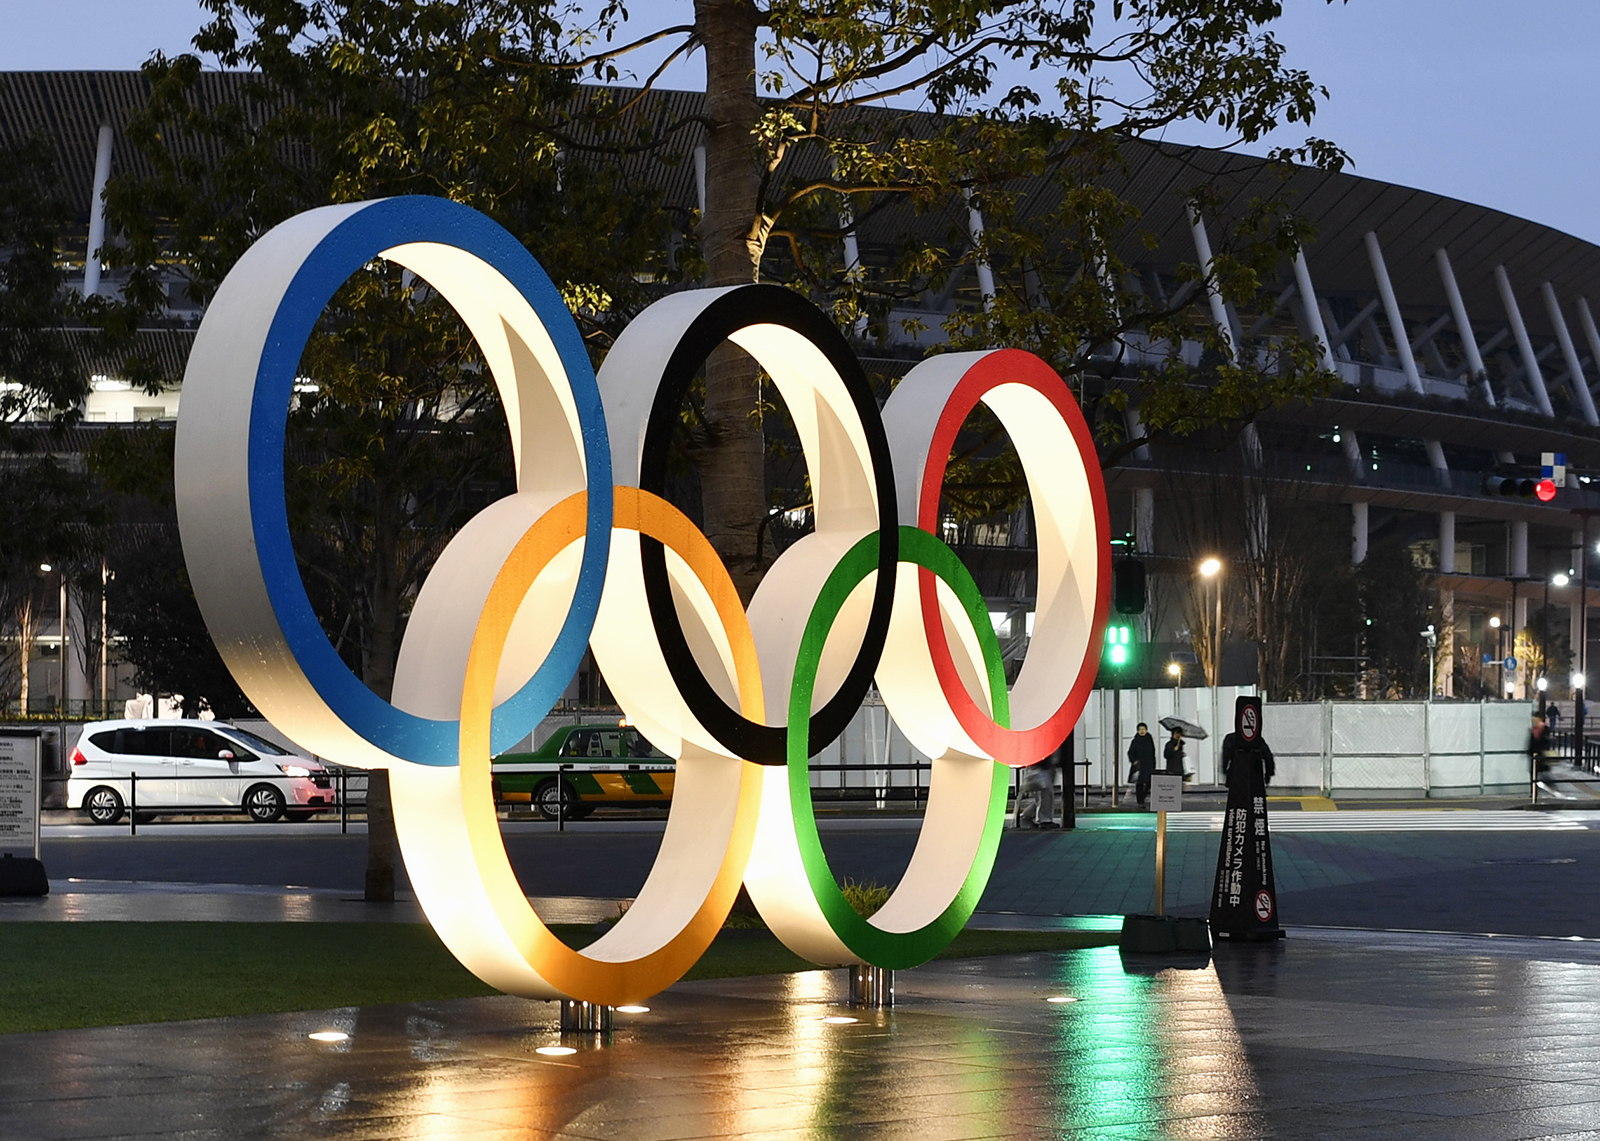 A monument depicting the Olympic rings is seen in front of Tokyo's National Stadium, the main venue for the Olympics and Paralympics, in January 2020.